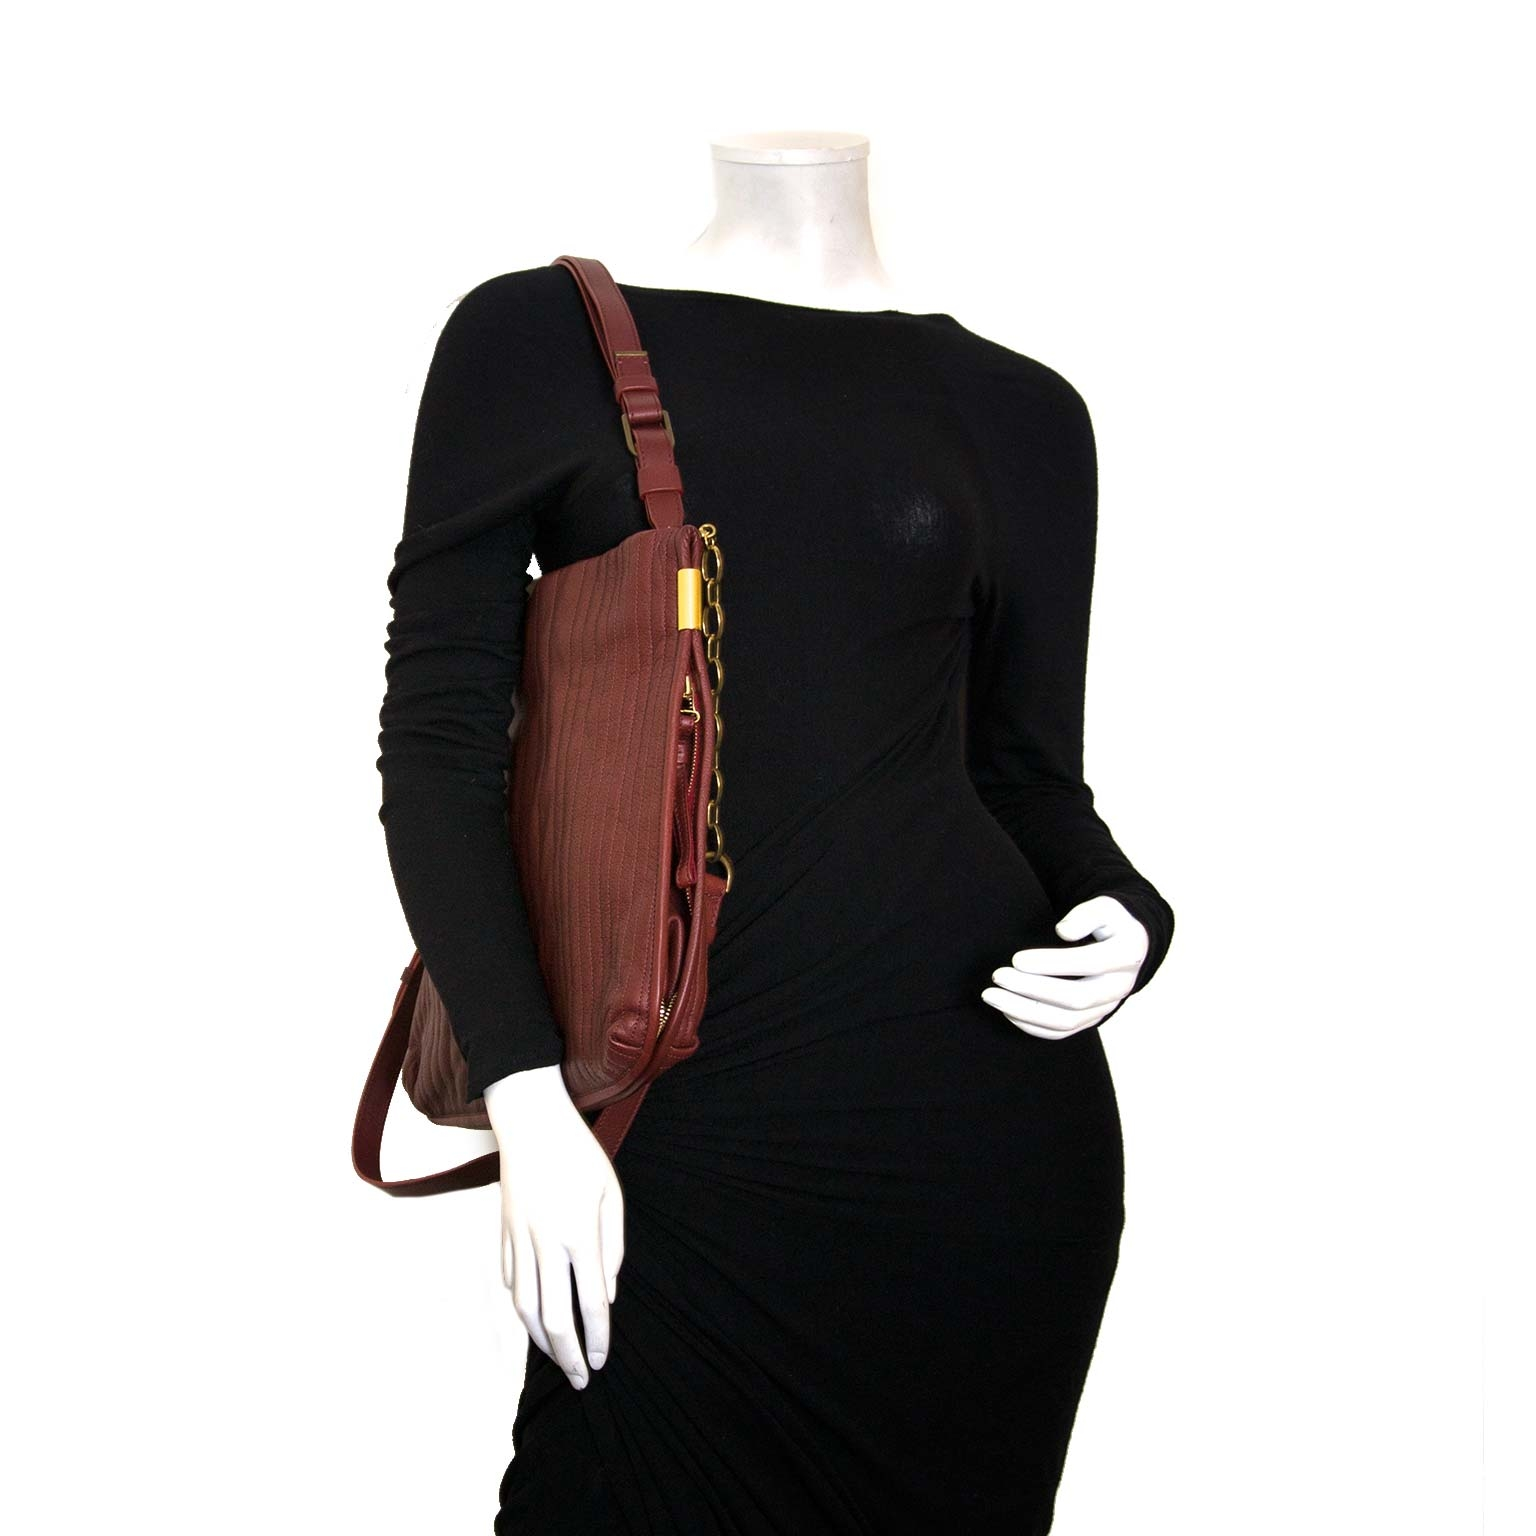 2203c7cb5 Buy authentic Lanvin bordeaux tote at labellov vintage fashion webshop koop  authentieke lanvin bordeaux tas at labellov vintage mode webshop belgië